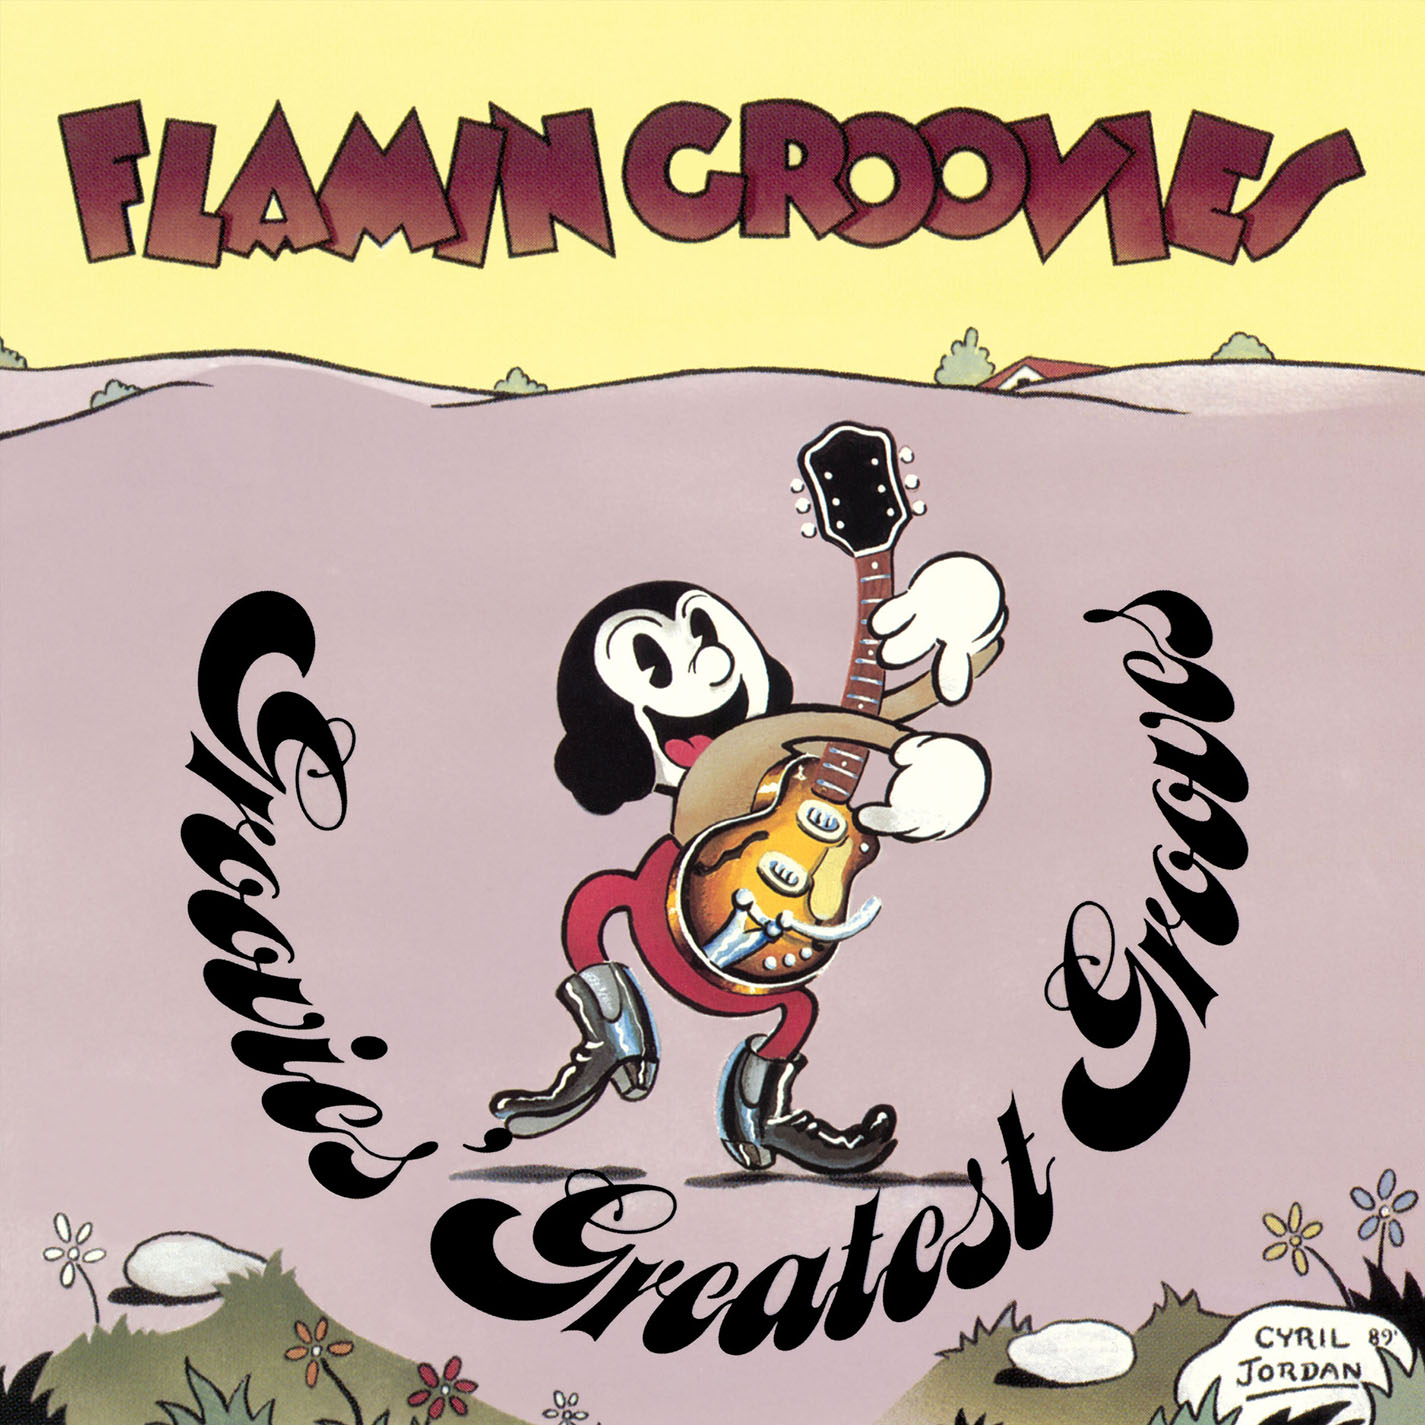 Flamin' Groovies - Groovies Grestest Grooves [Rocktober 2016 Exclusive Limited Edition Vinyl]